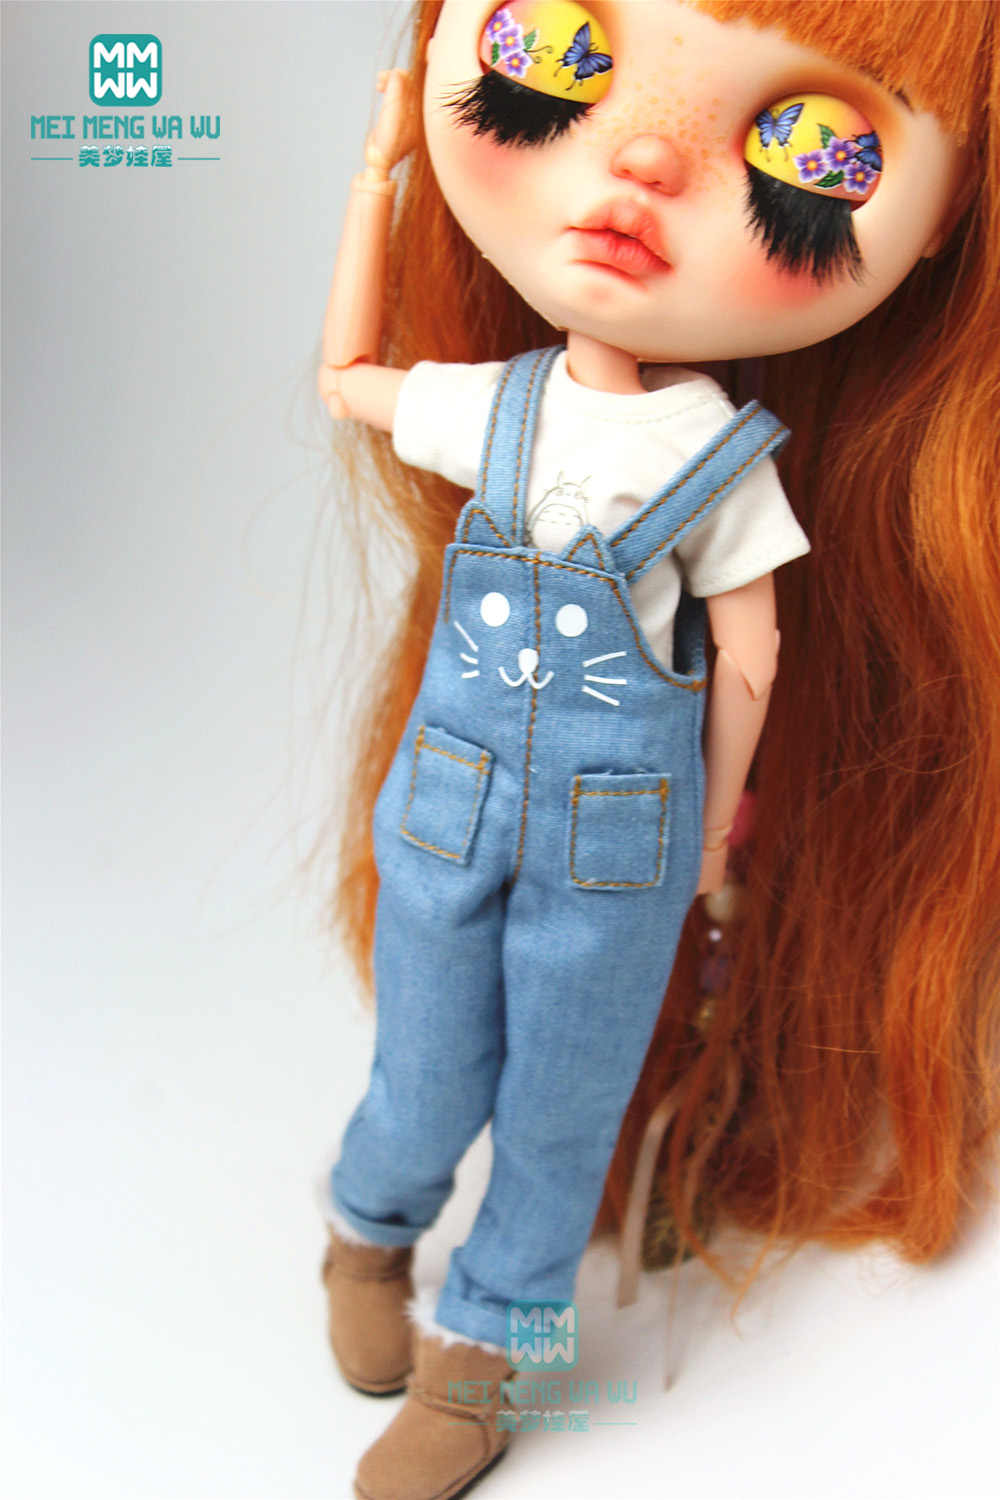 1 Pcs Blyth Kleding Mode Cartoon T-shirt, Kat Overalls Voor Blyth Azone 1/6 Pop Accessoires